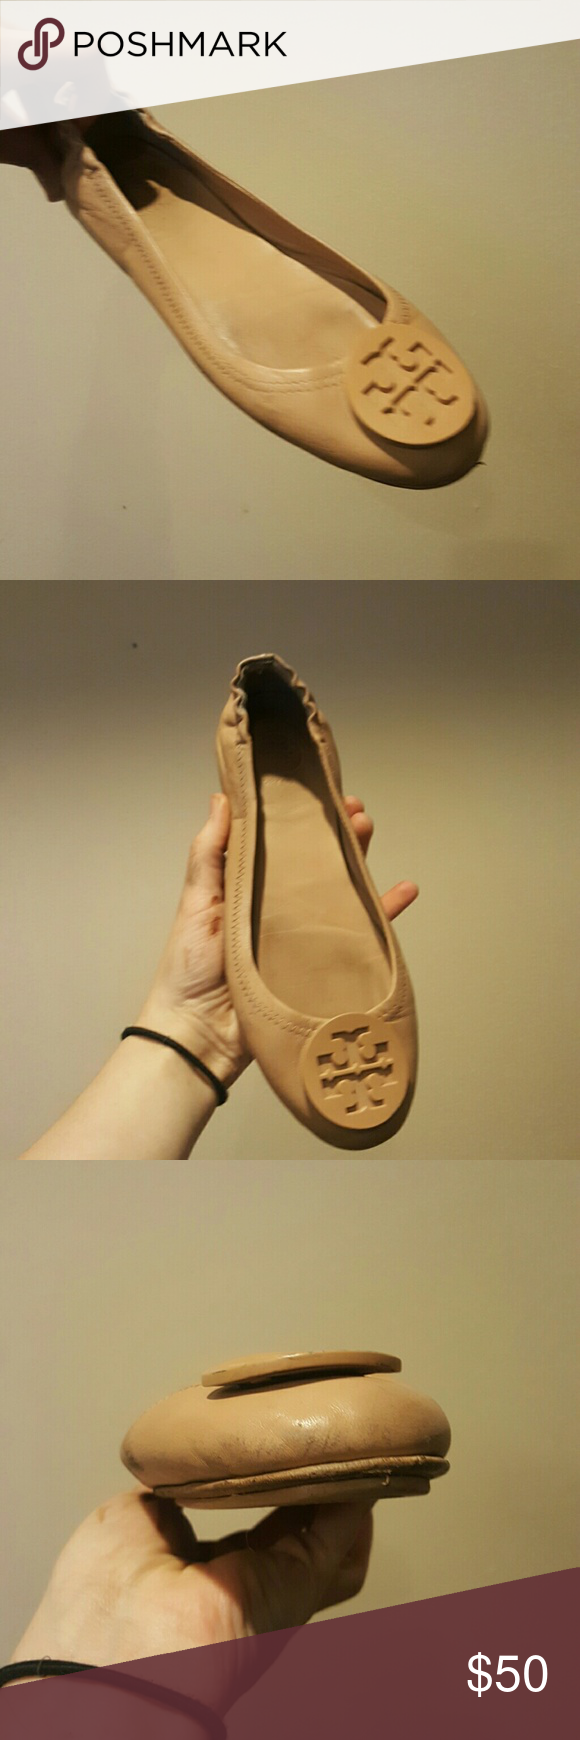 fb057dcfb TORY BURCH MINNIE TRAVEL FLAT NUDE 6.5 TORY BURCH MINNIE TRAVEL FLAT NUDE  6.5 REVA Guc Some wear on soles Tory Burch Shoes Flats   Loafers